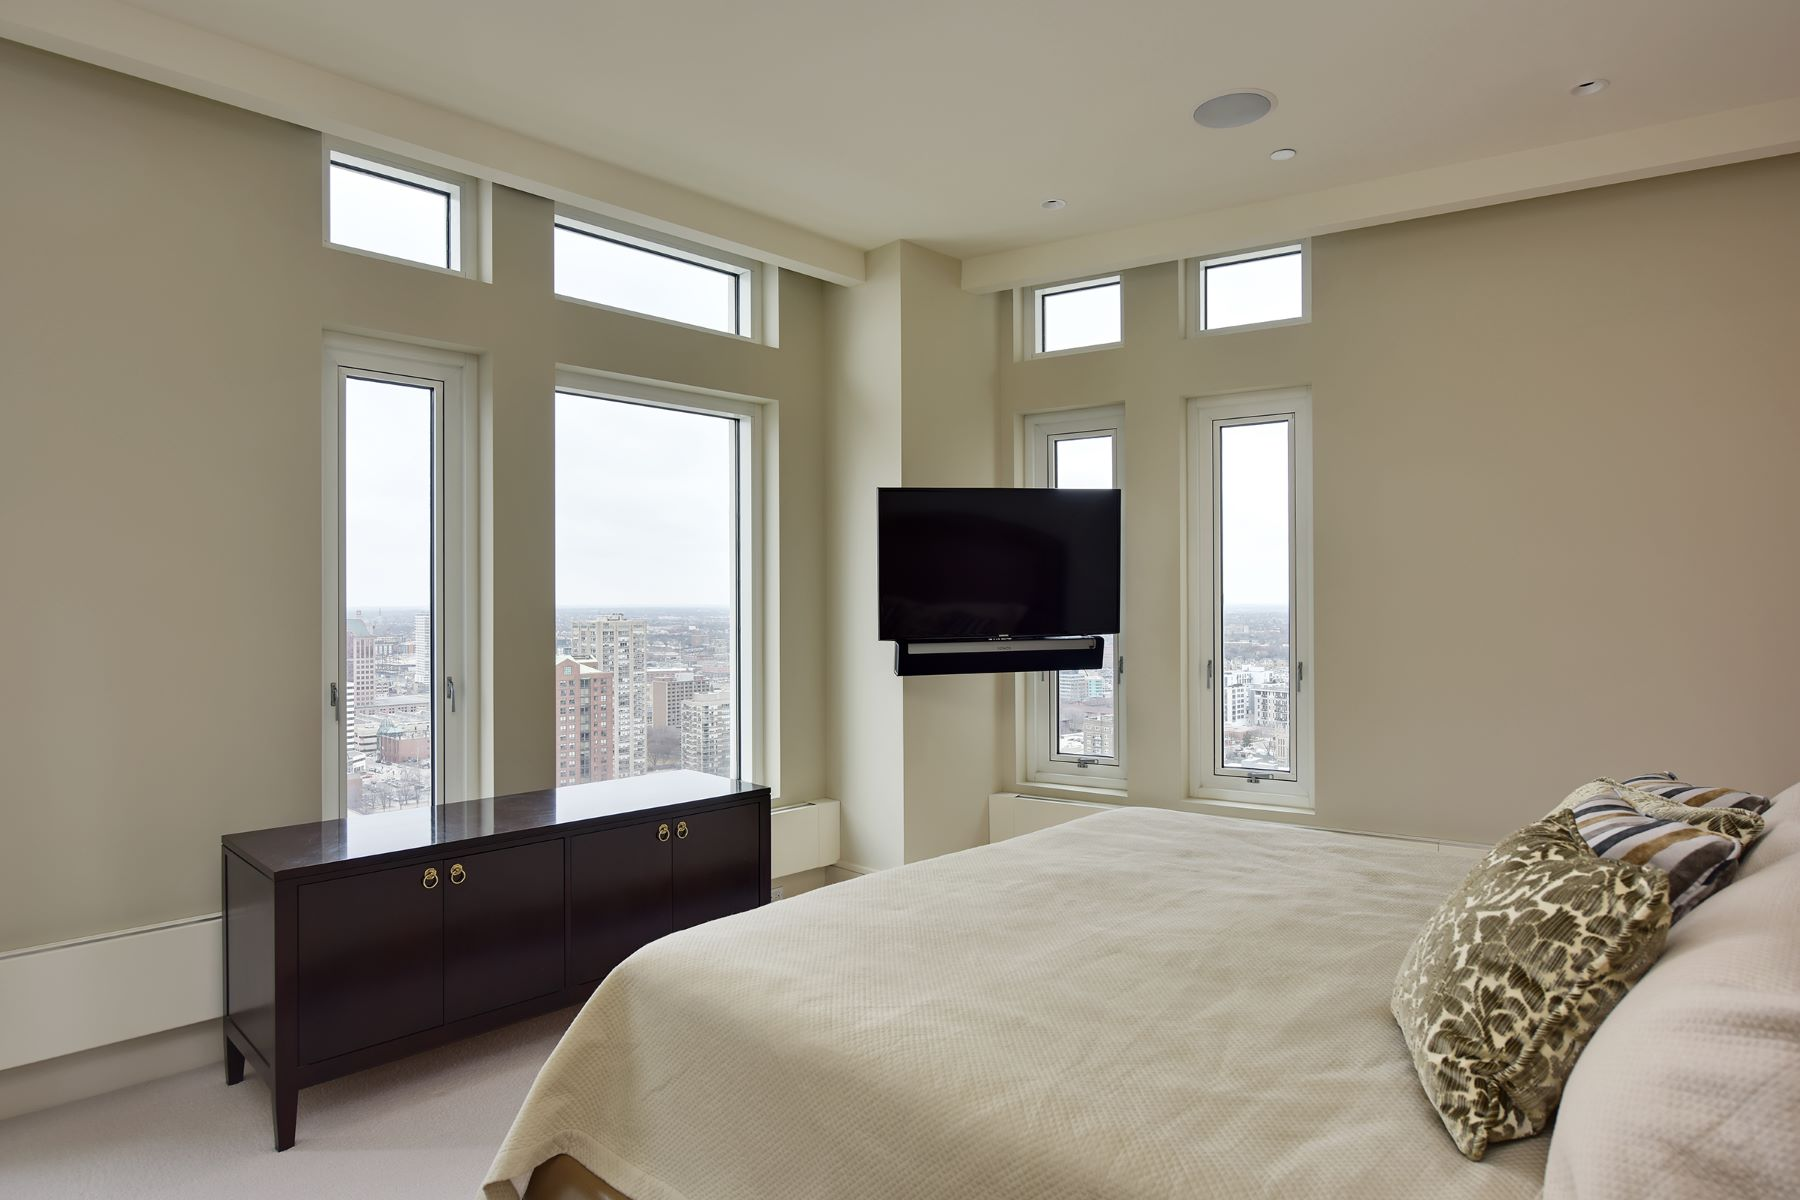 Additional photo for property listing at University Club Tower Rare Full Floor 825 N. Prospect Avenue  26th Floor Milwaukee, Wisconsin 53202 United States